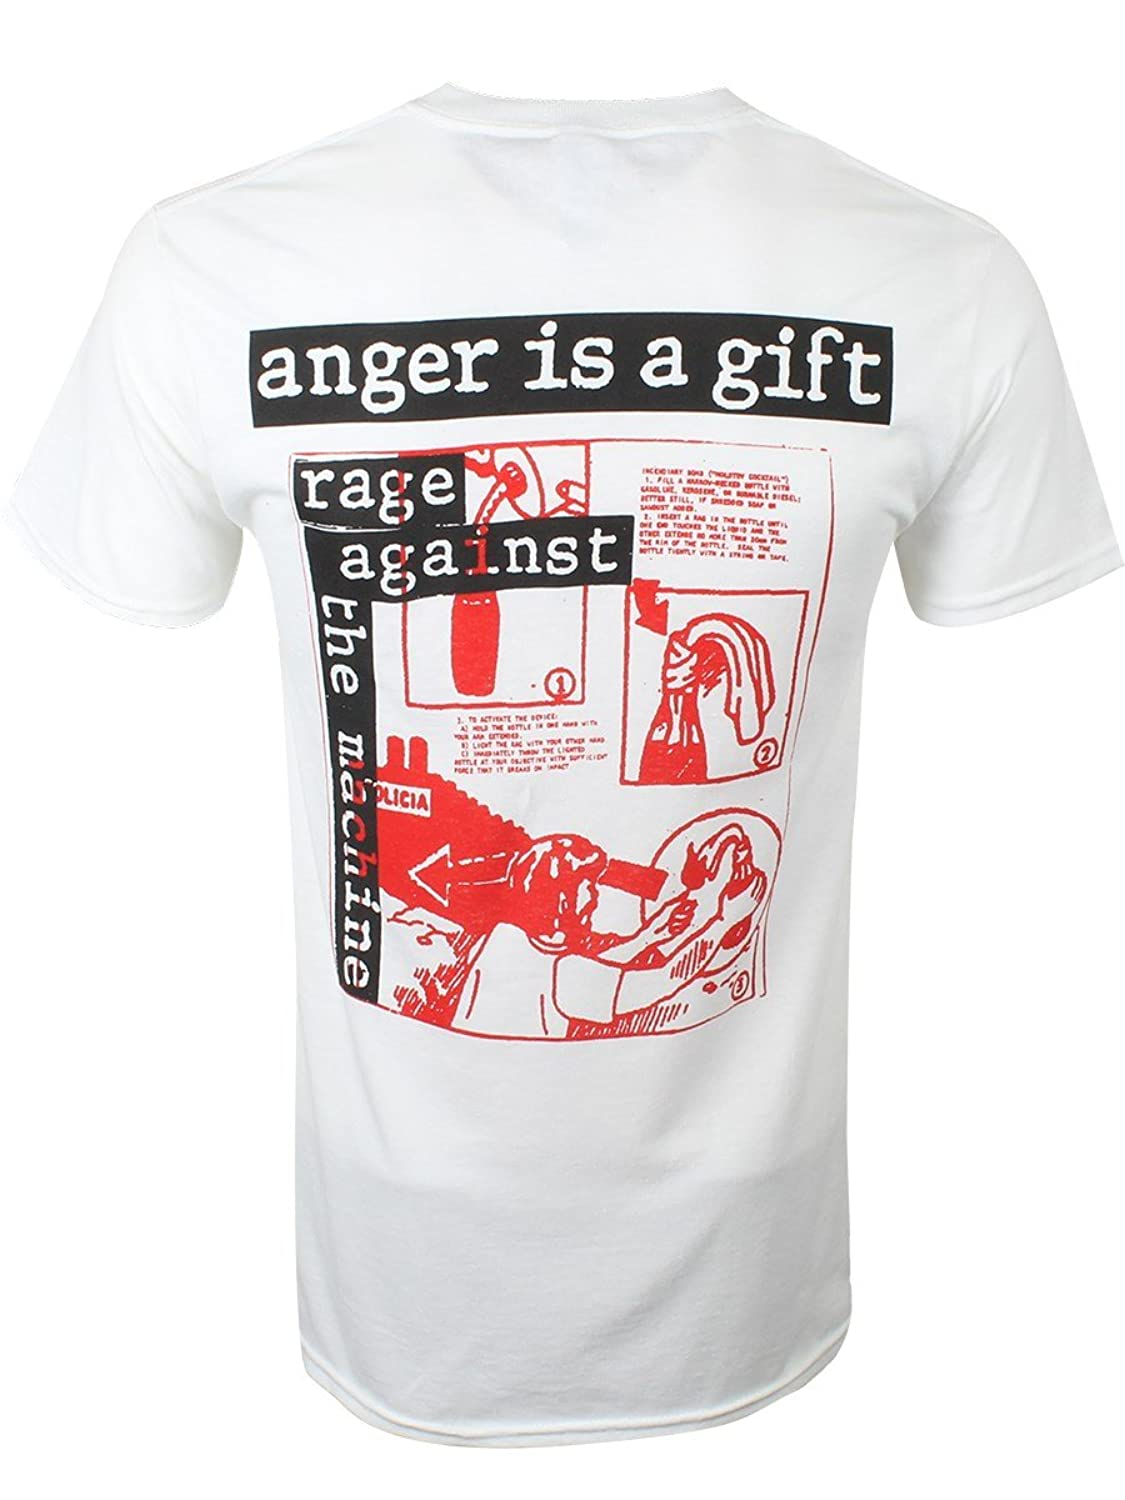 Amazon.com: Rage Against The Machine Men's Anger Is A Gift RATM T-shirt White: Clothing